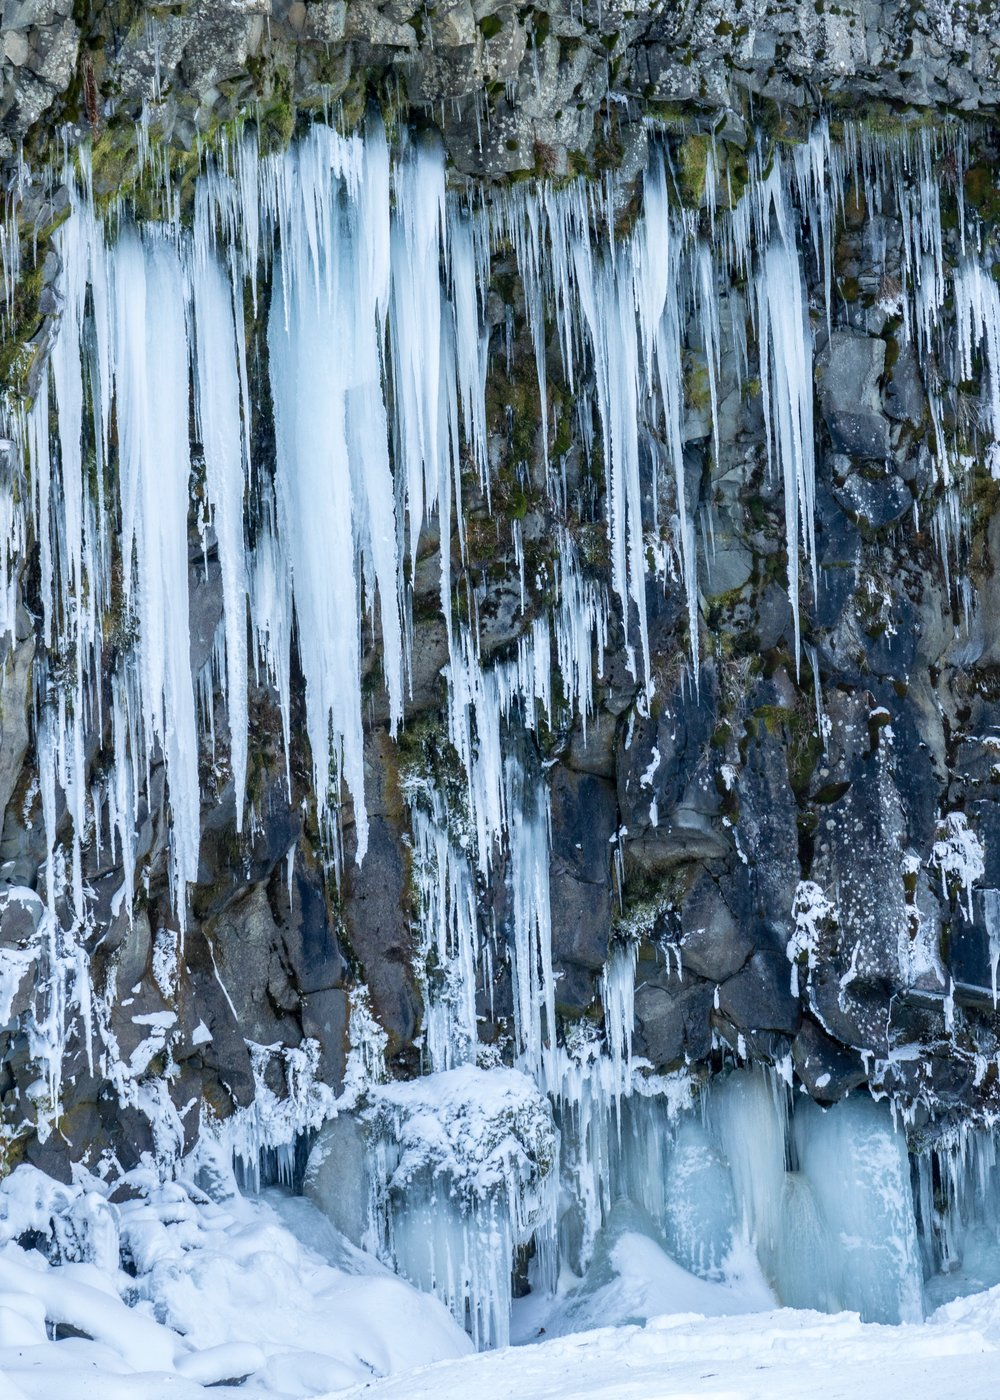 The one side of the rock face was covered in the craziest icicles.